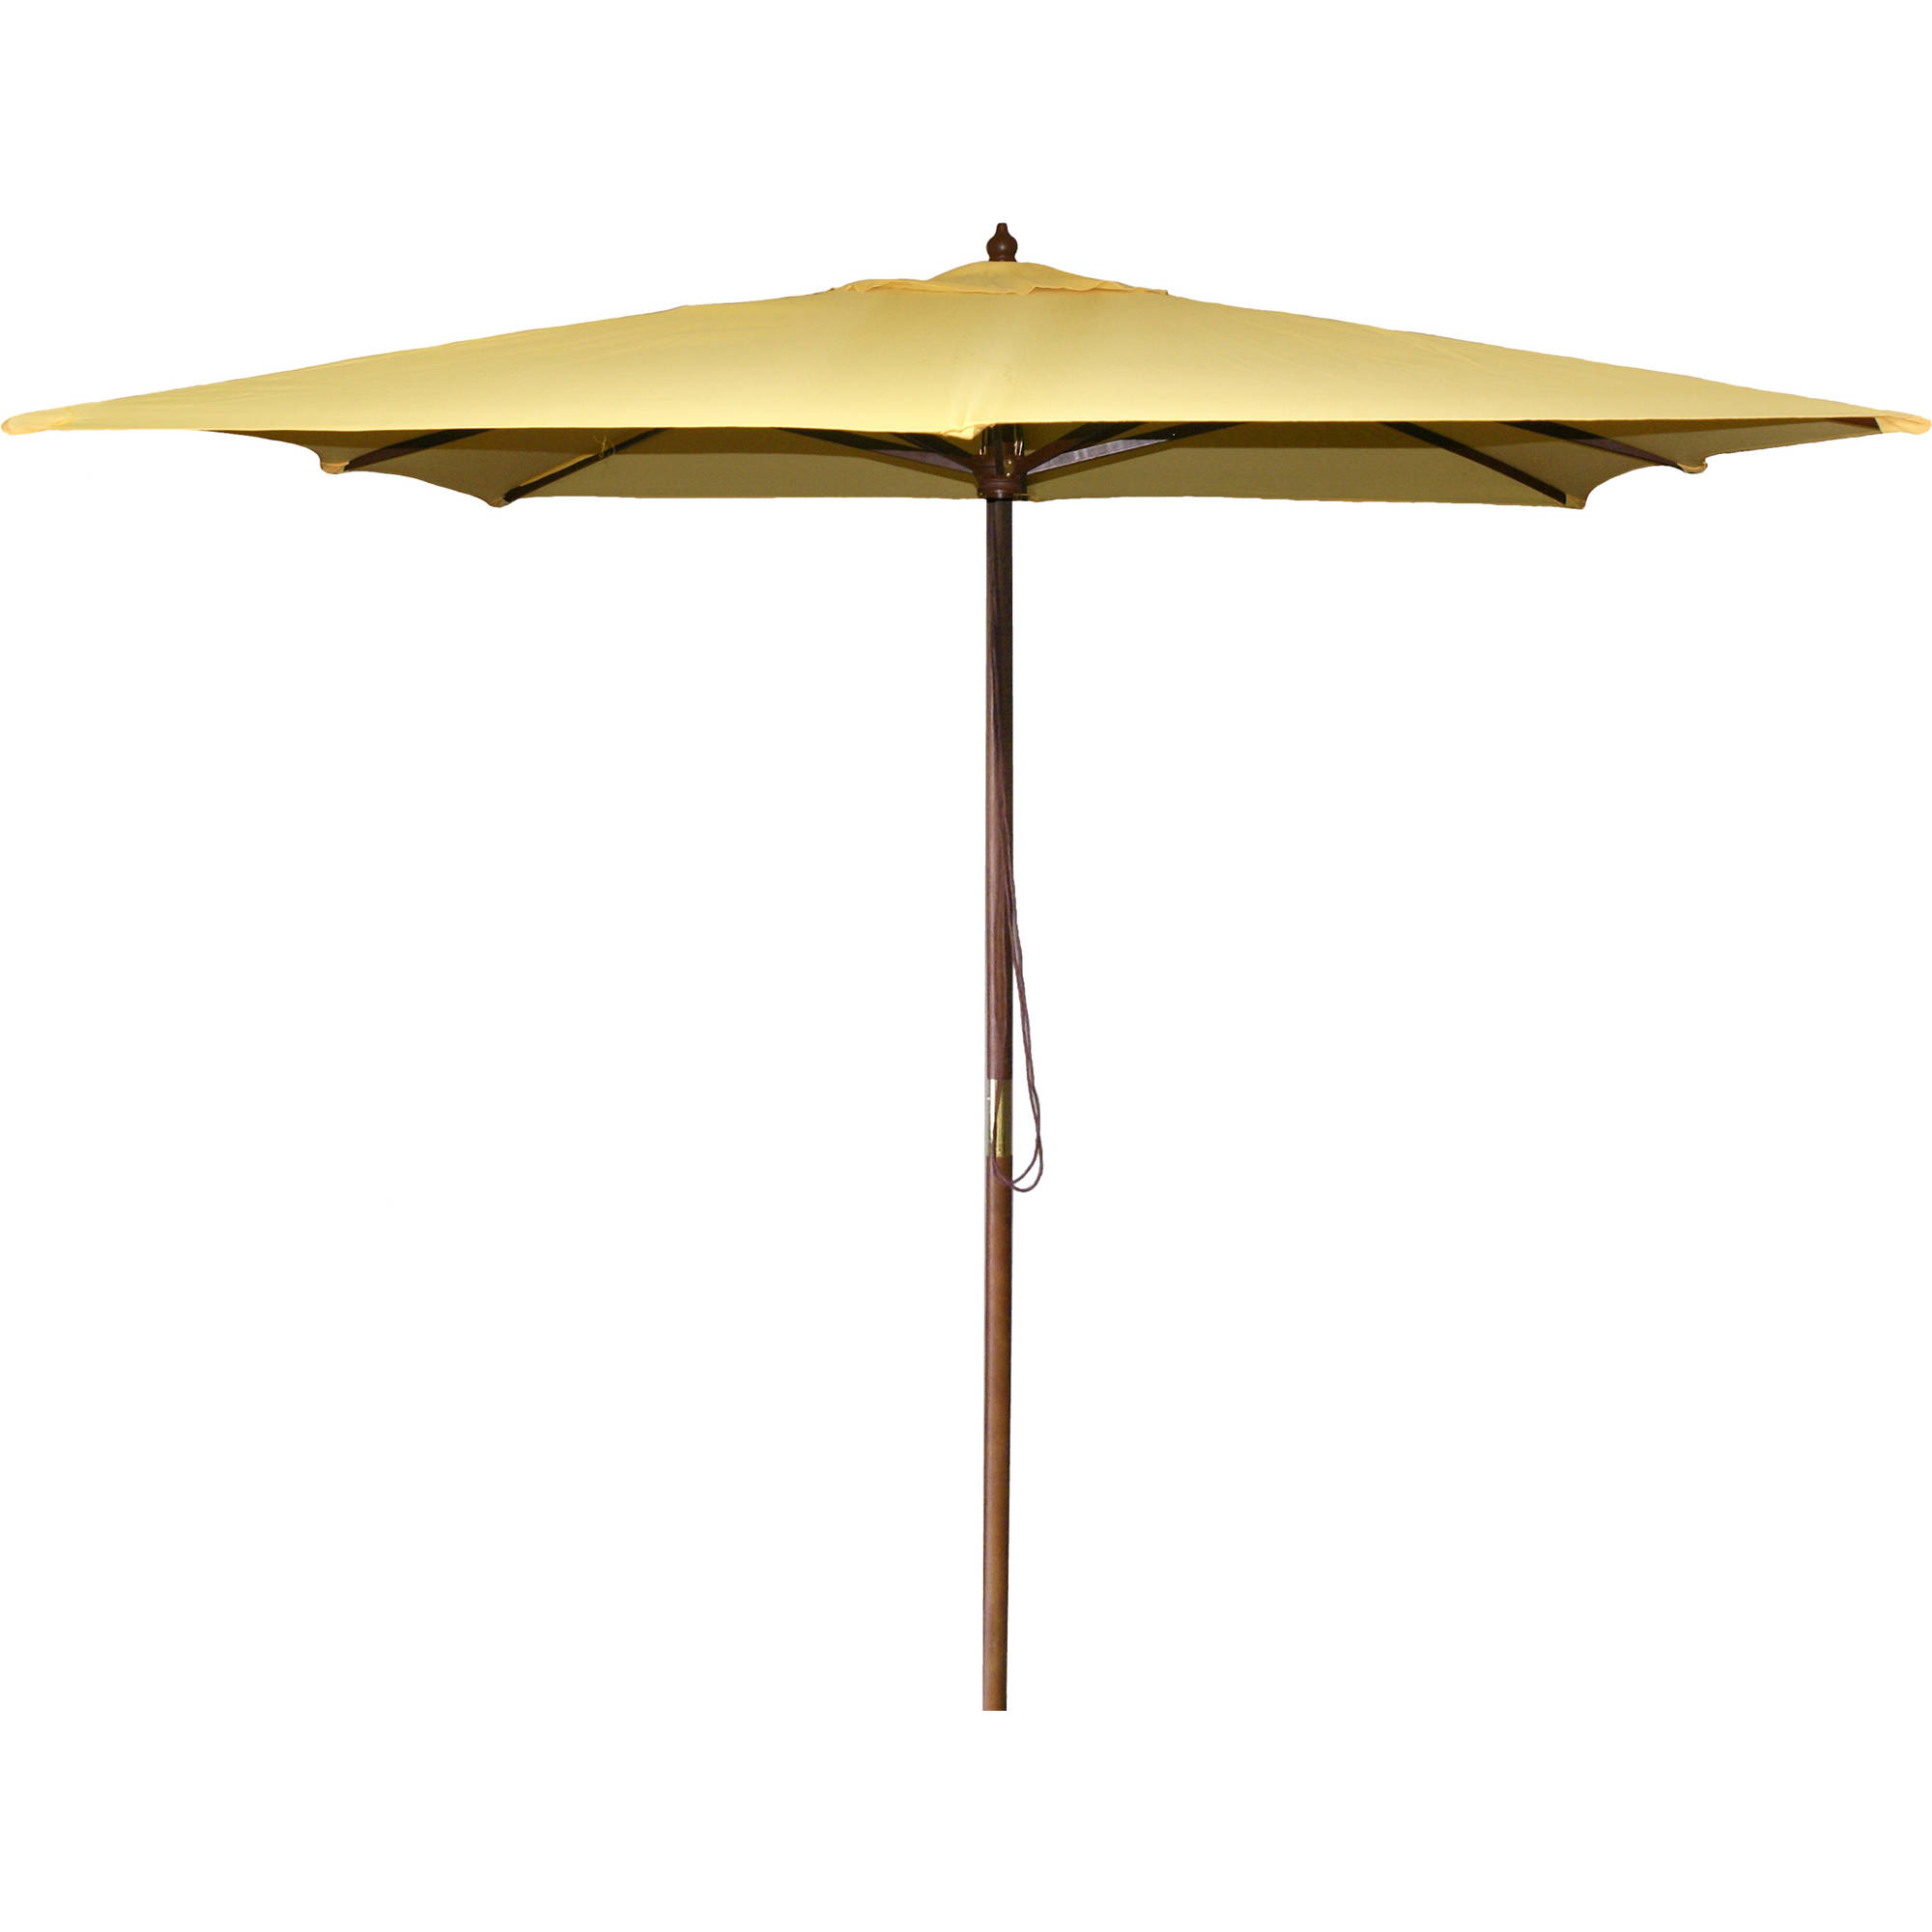 Jordan Manufacturing 8.5' Square Wood Market Umbrella